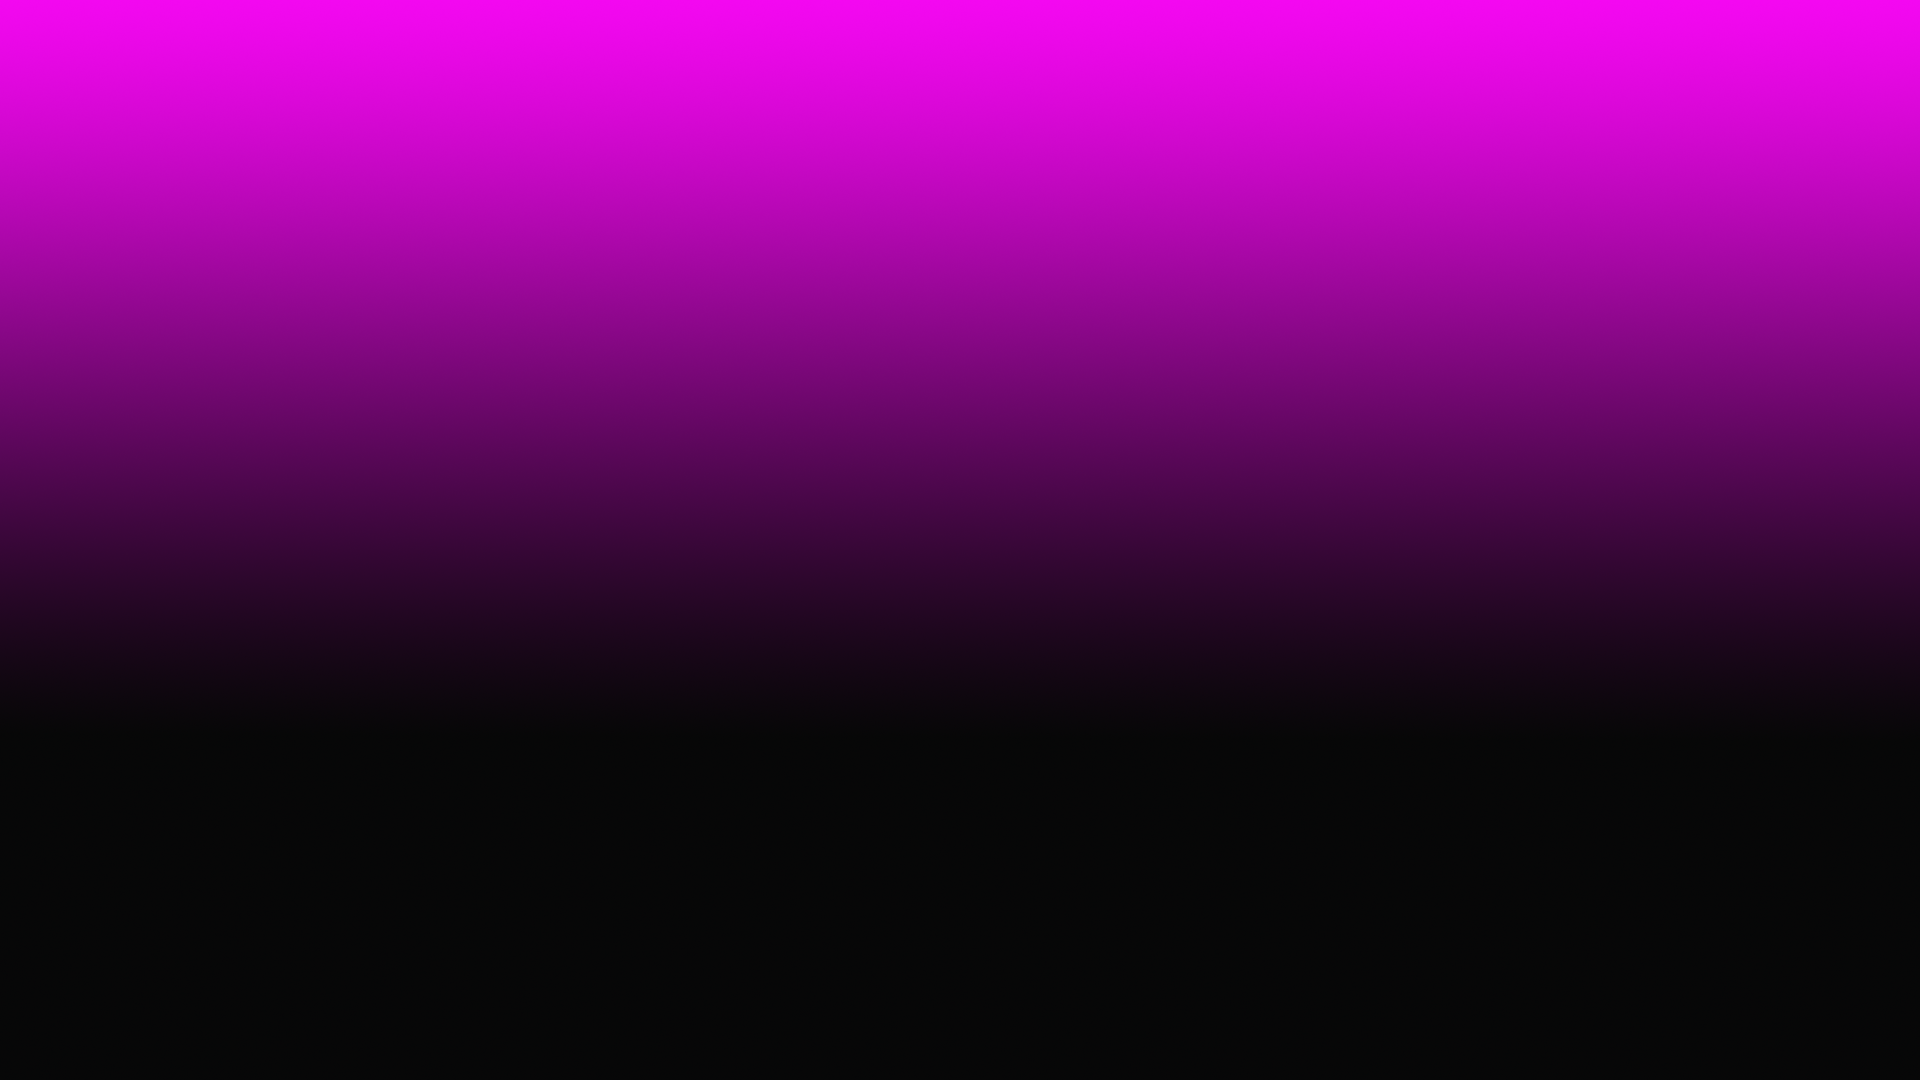 Pink Black Fading Gradient Desktop Wallpaper | VizTV Media